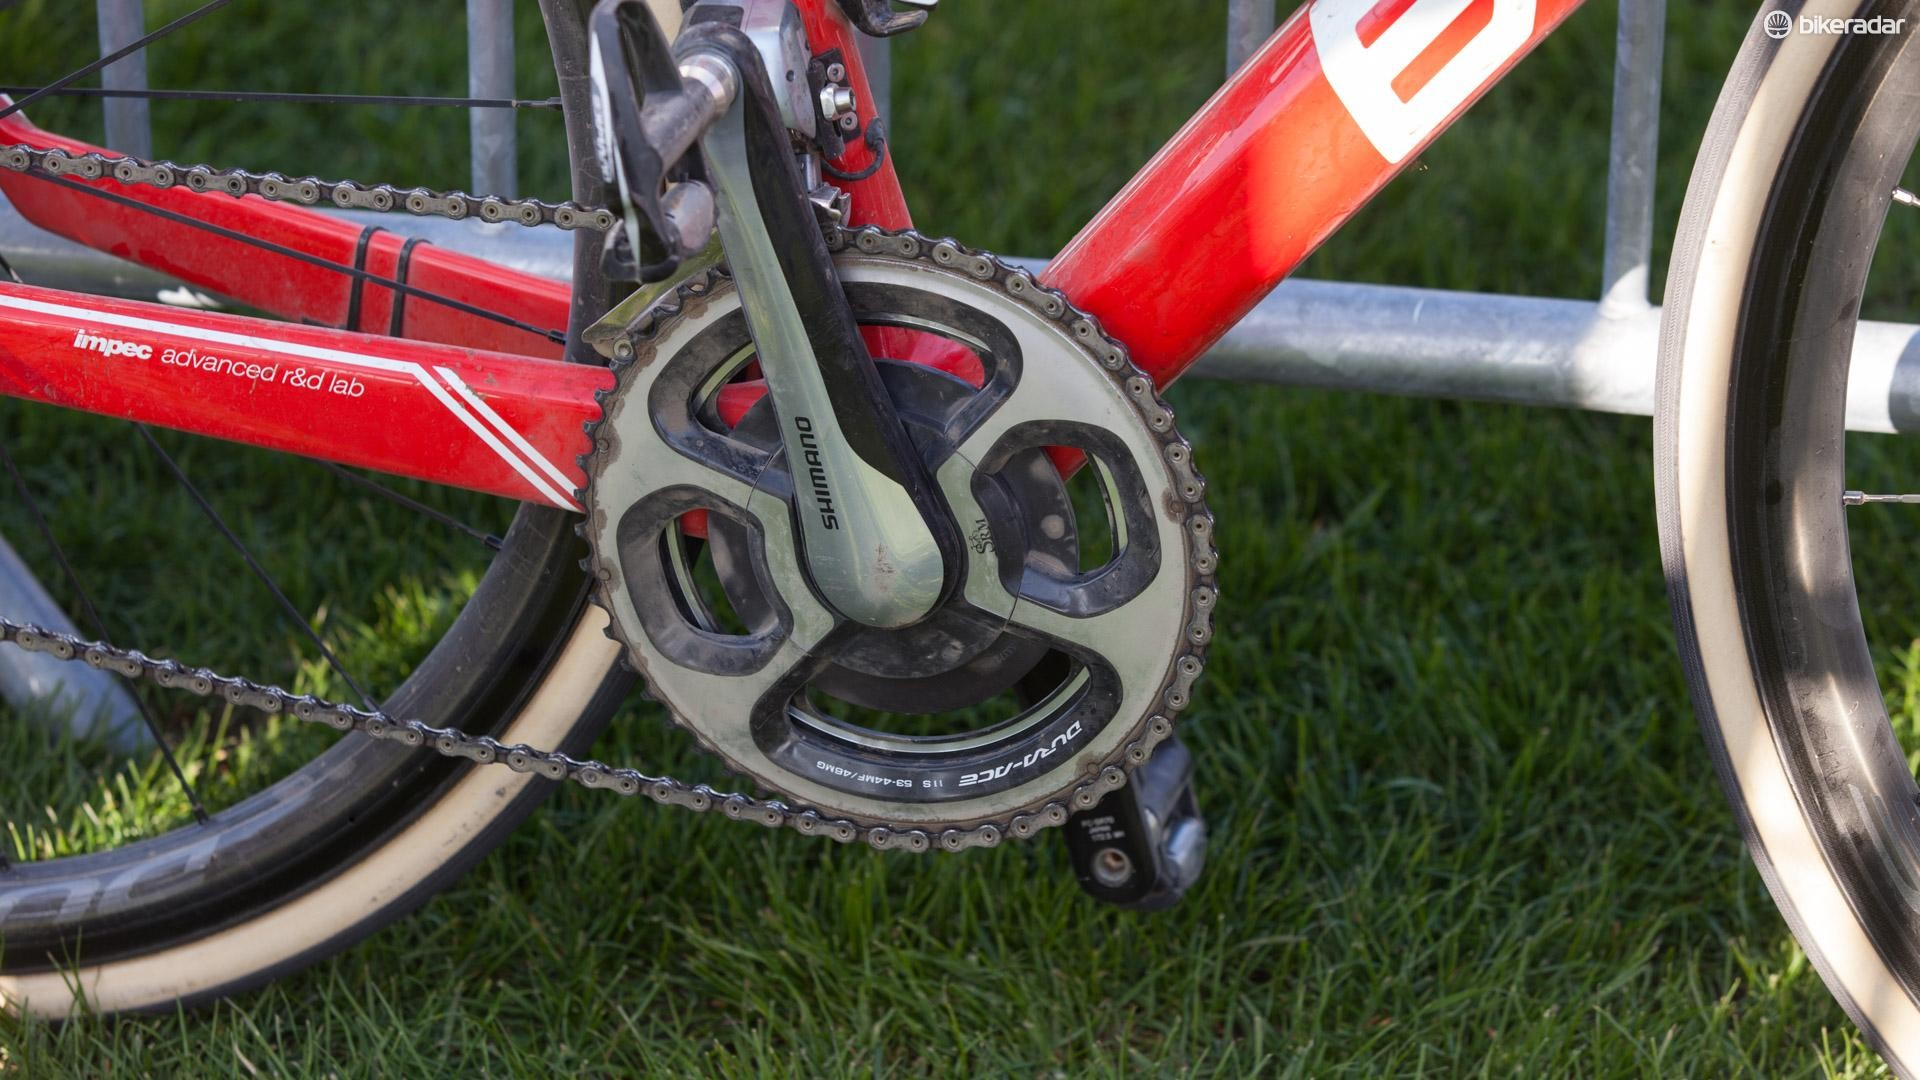 Van Avermaet has SRM Shimano 11-spd power meters on both bikes. Since Shimano began making a power meter, SRM won't be making power meters with 9100 cranks